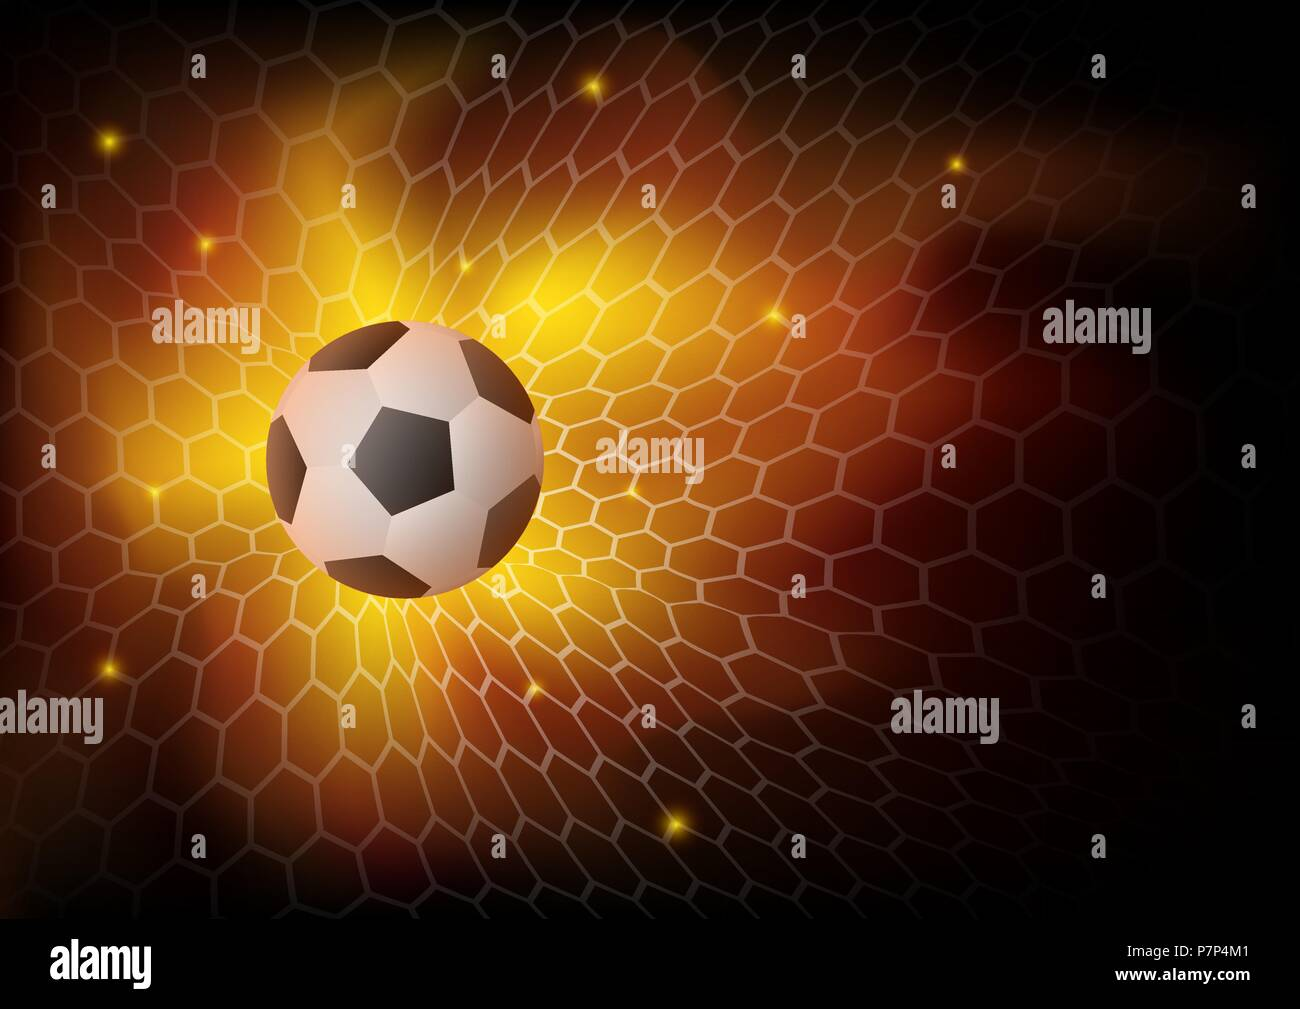 Fire football background, Abstract ball game match goal moment with ball in the net. Vector illustration for the soccer championship, games. - Stock Vector